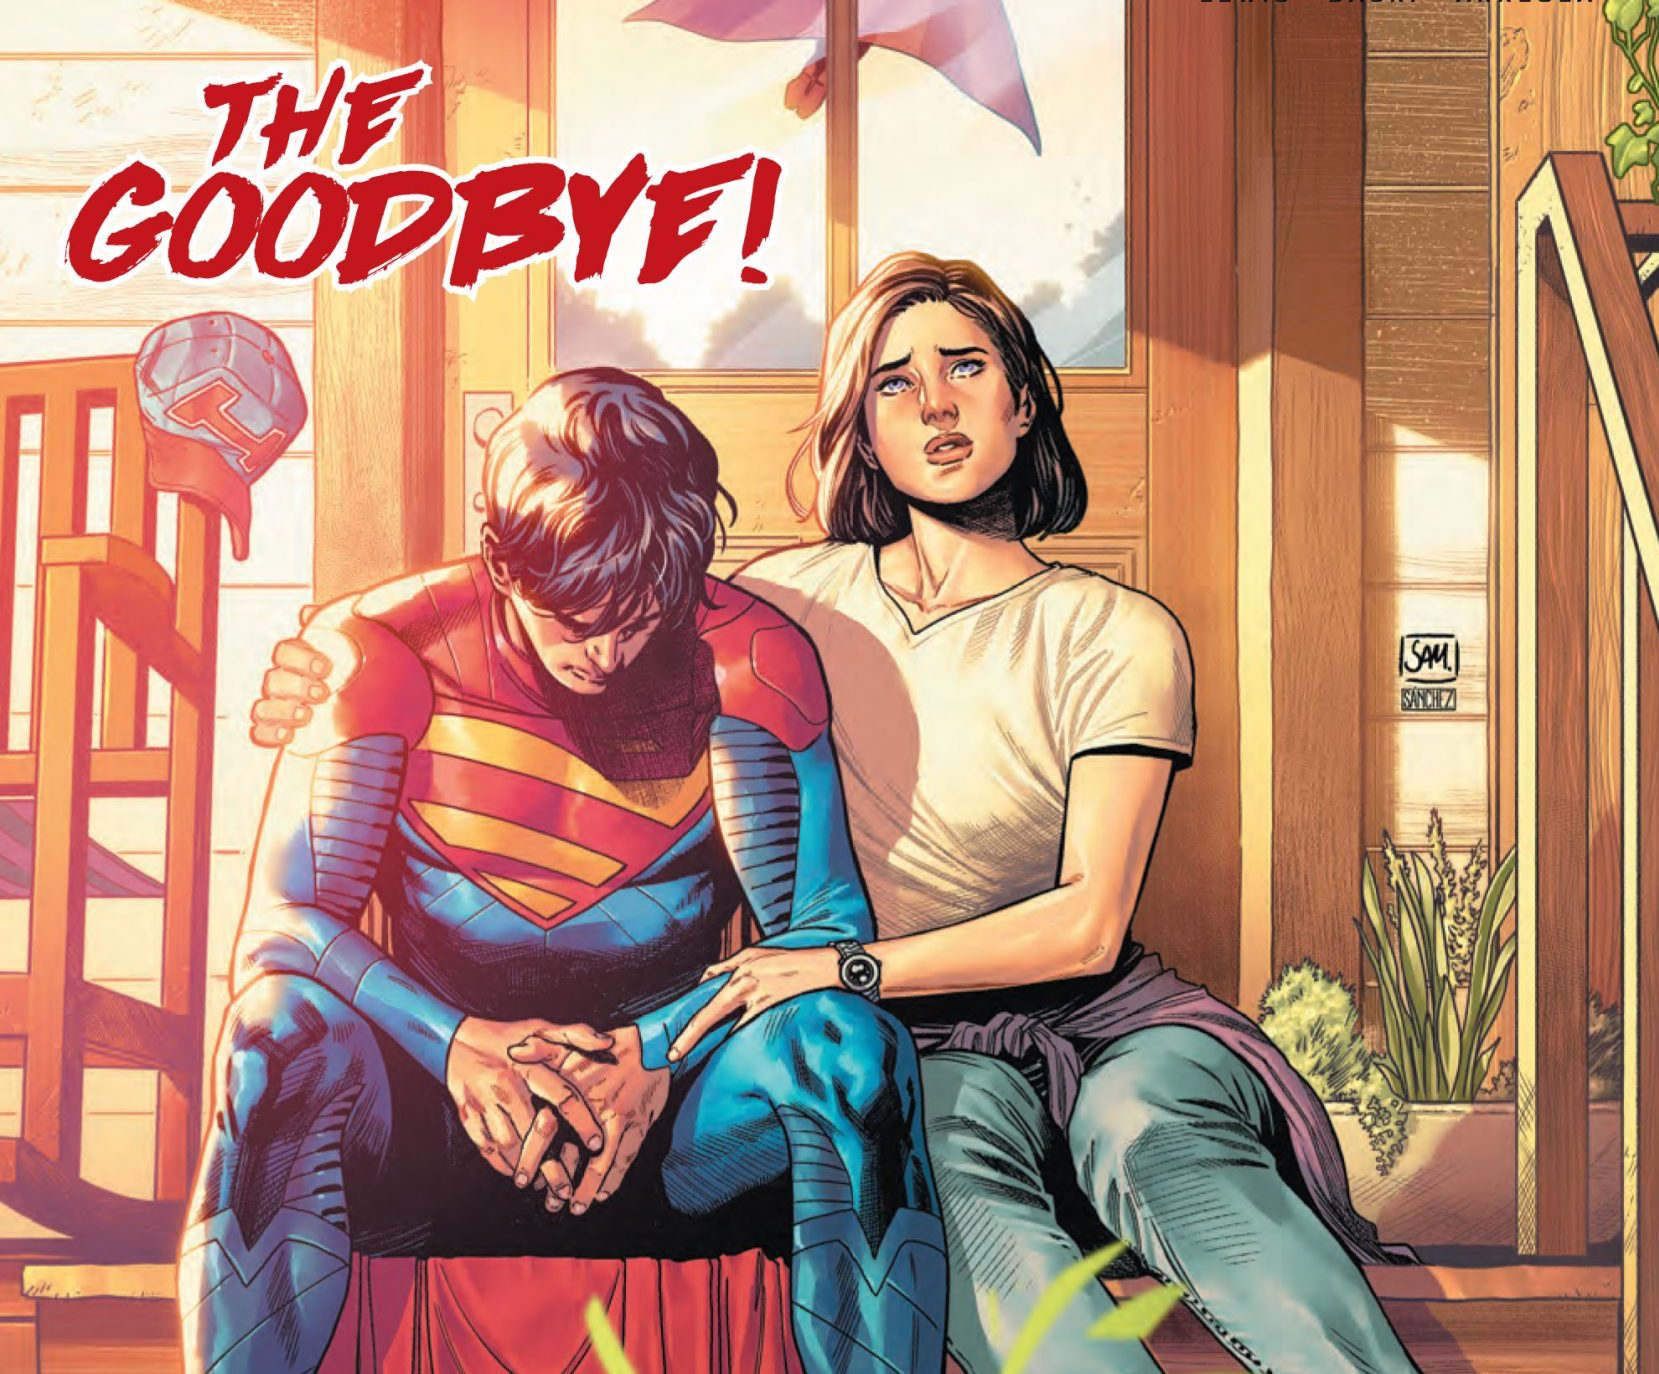 'Action Comics' #1035 offers meaningful goodbyes from Superman